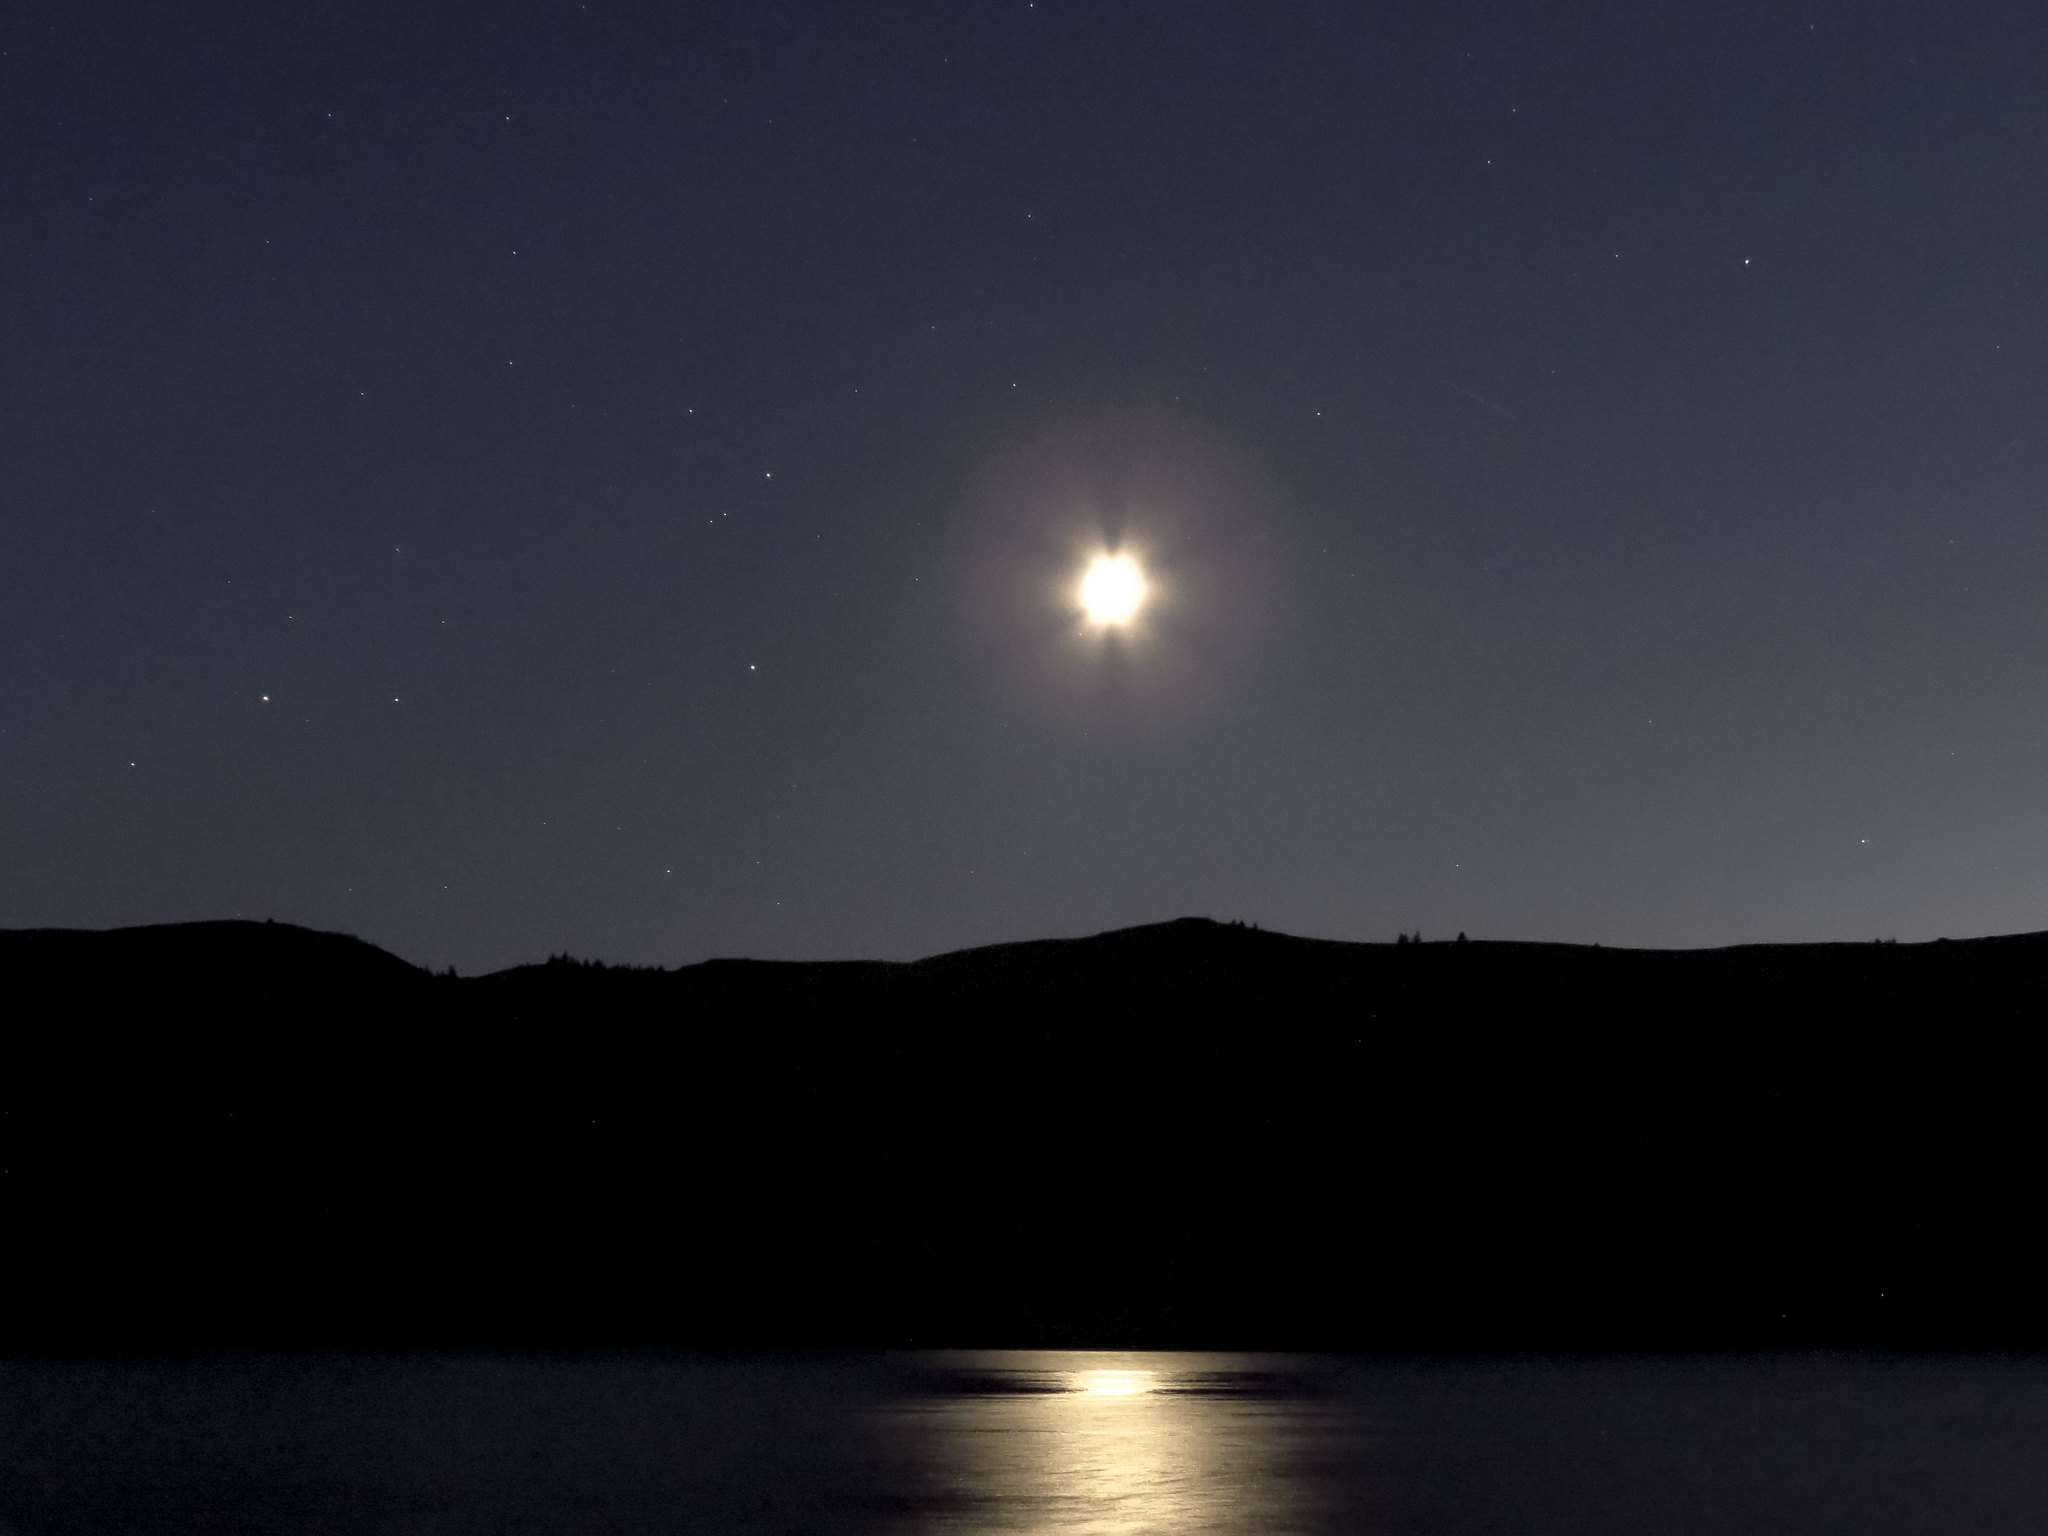 Saturn can be seen in the lower right sky over Lake Roosevelt.